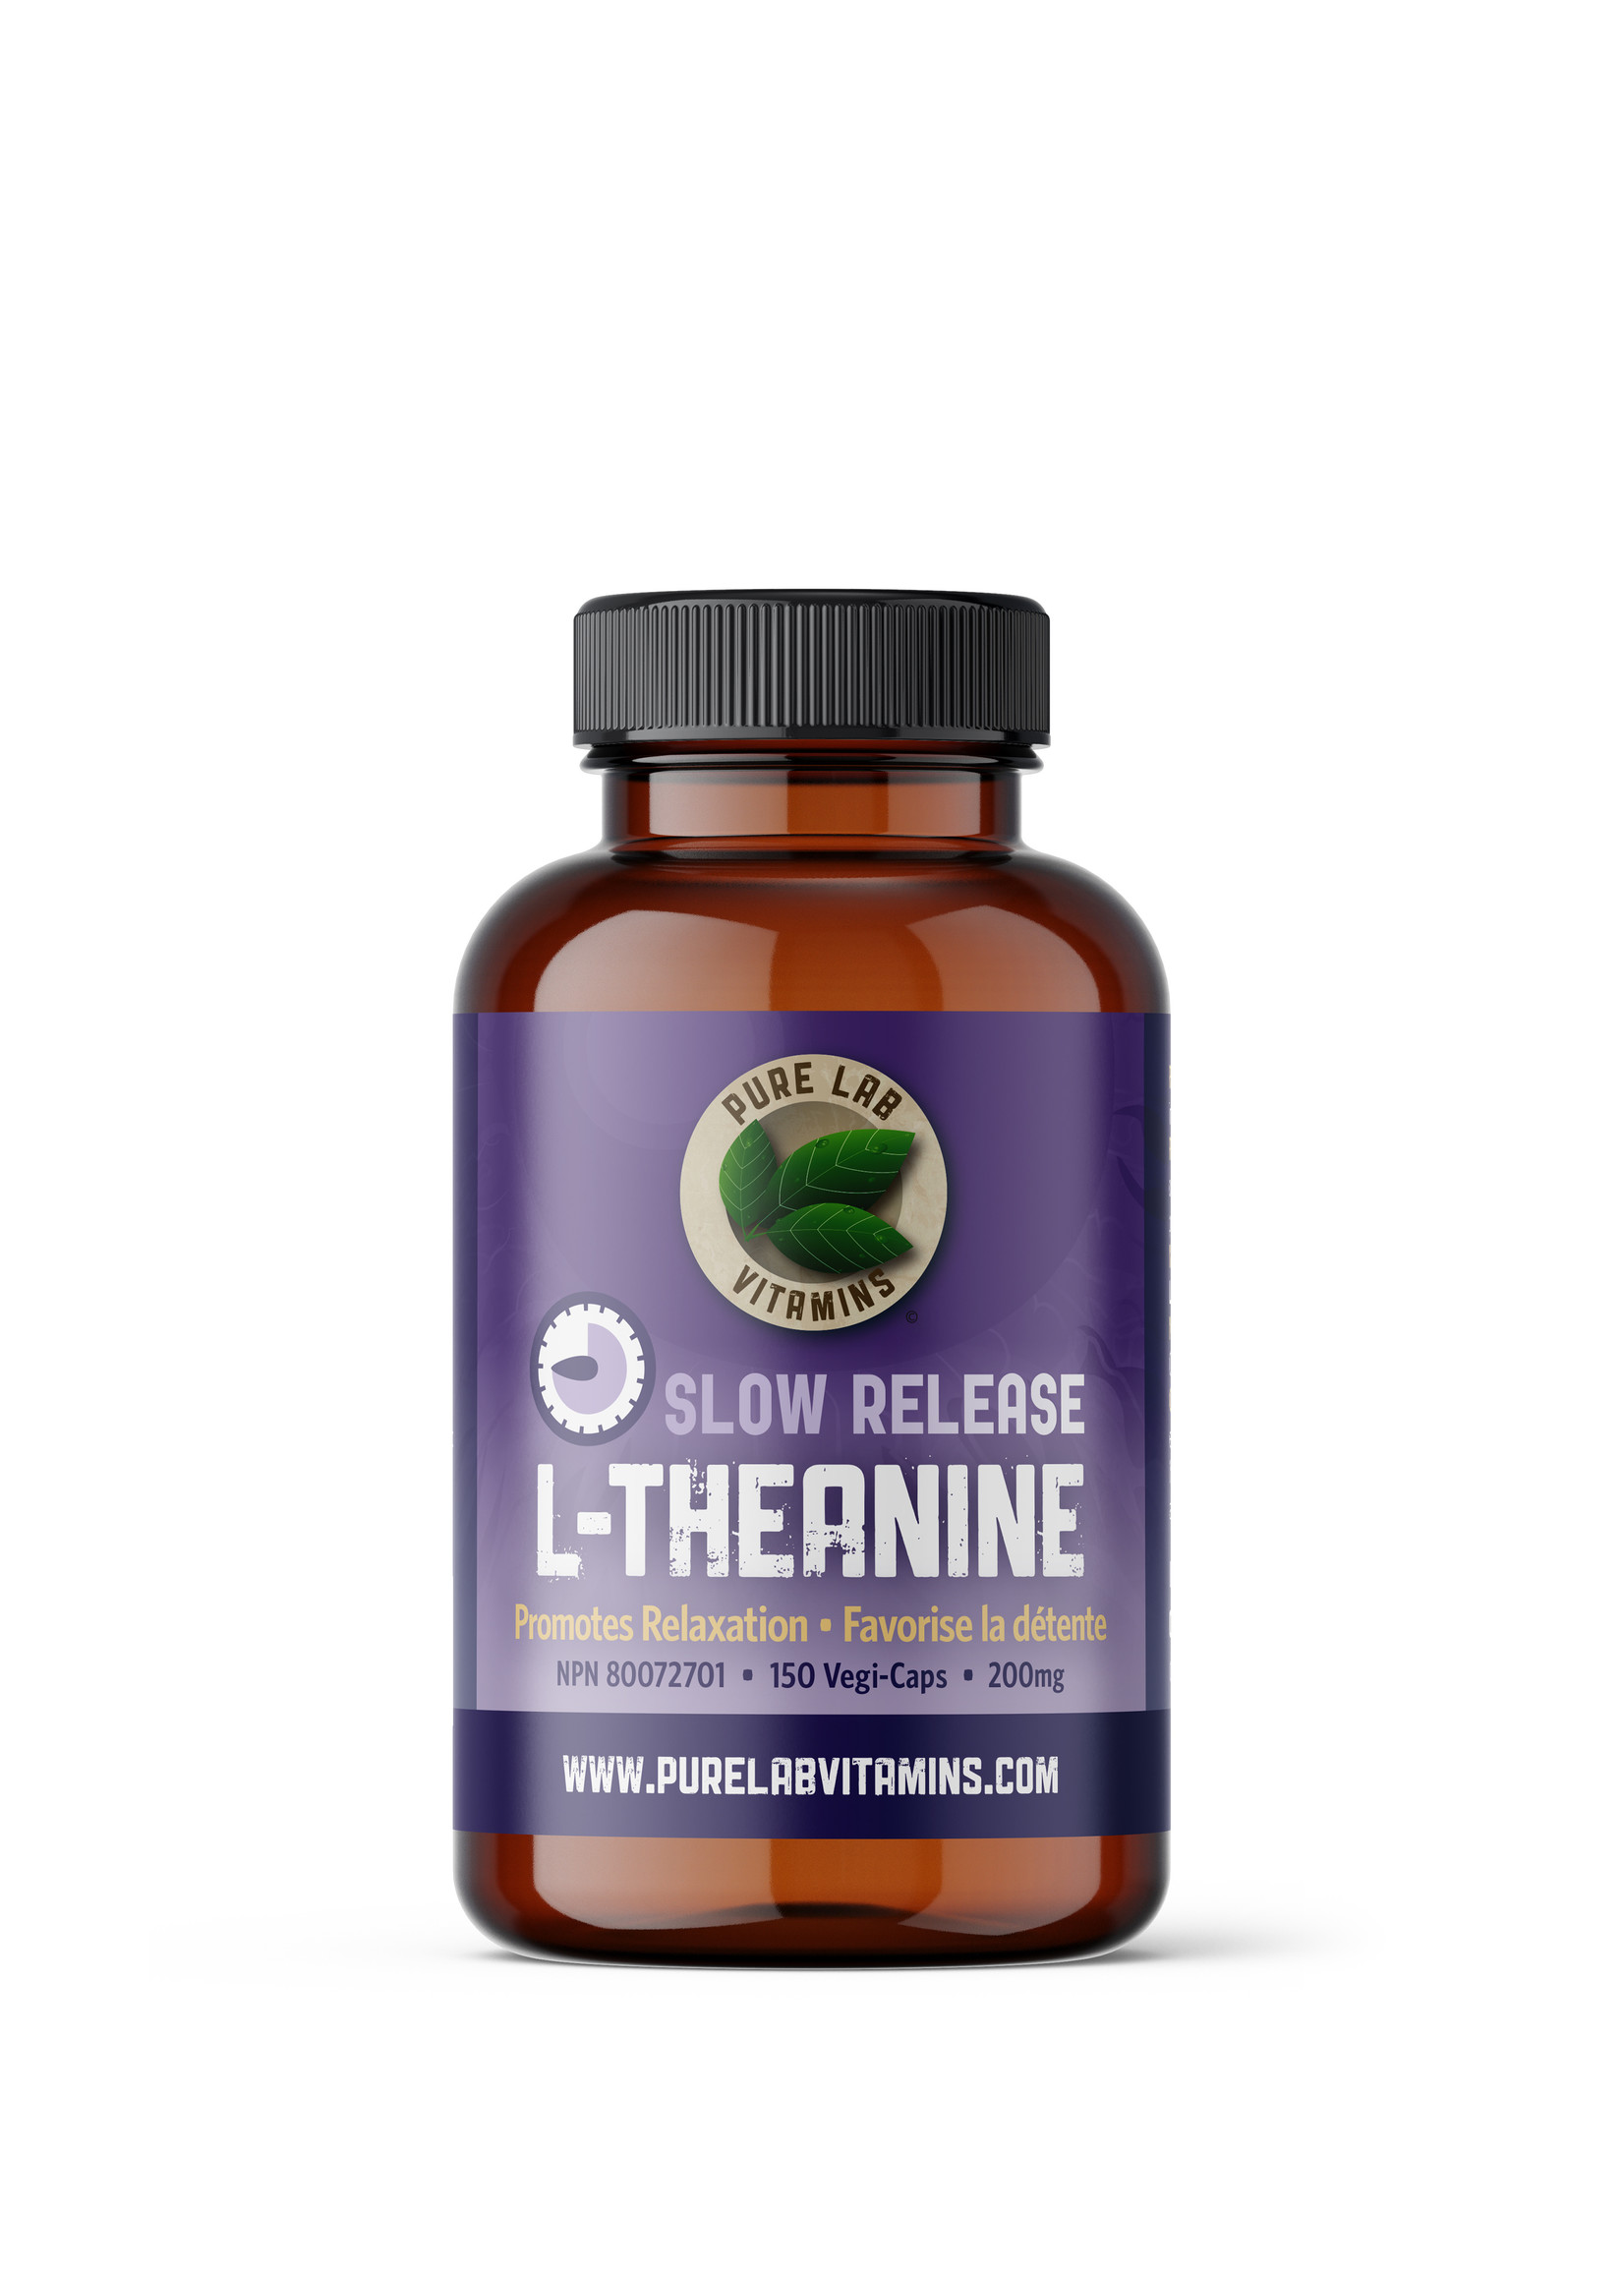 Pure lab Pure Lab L-Theanine Slow Release 200mg